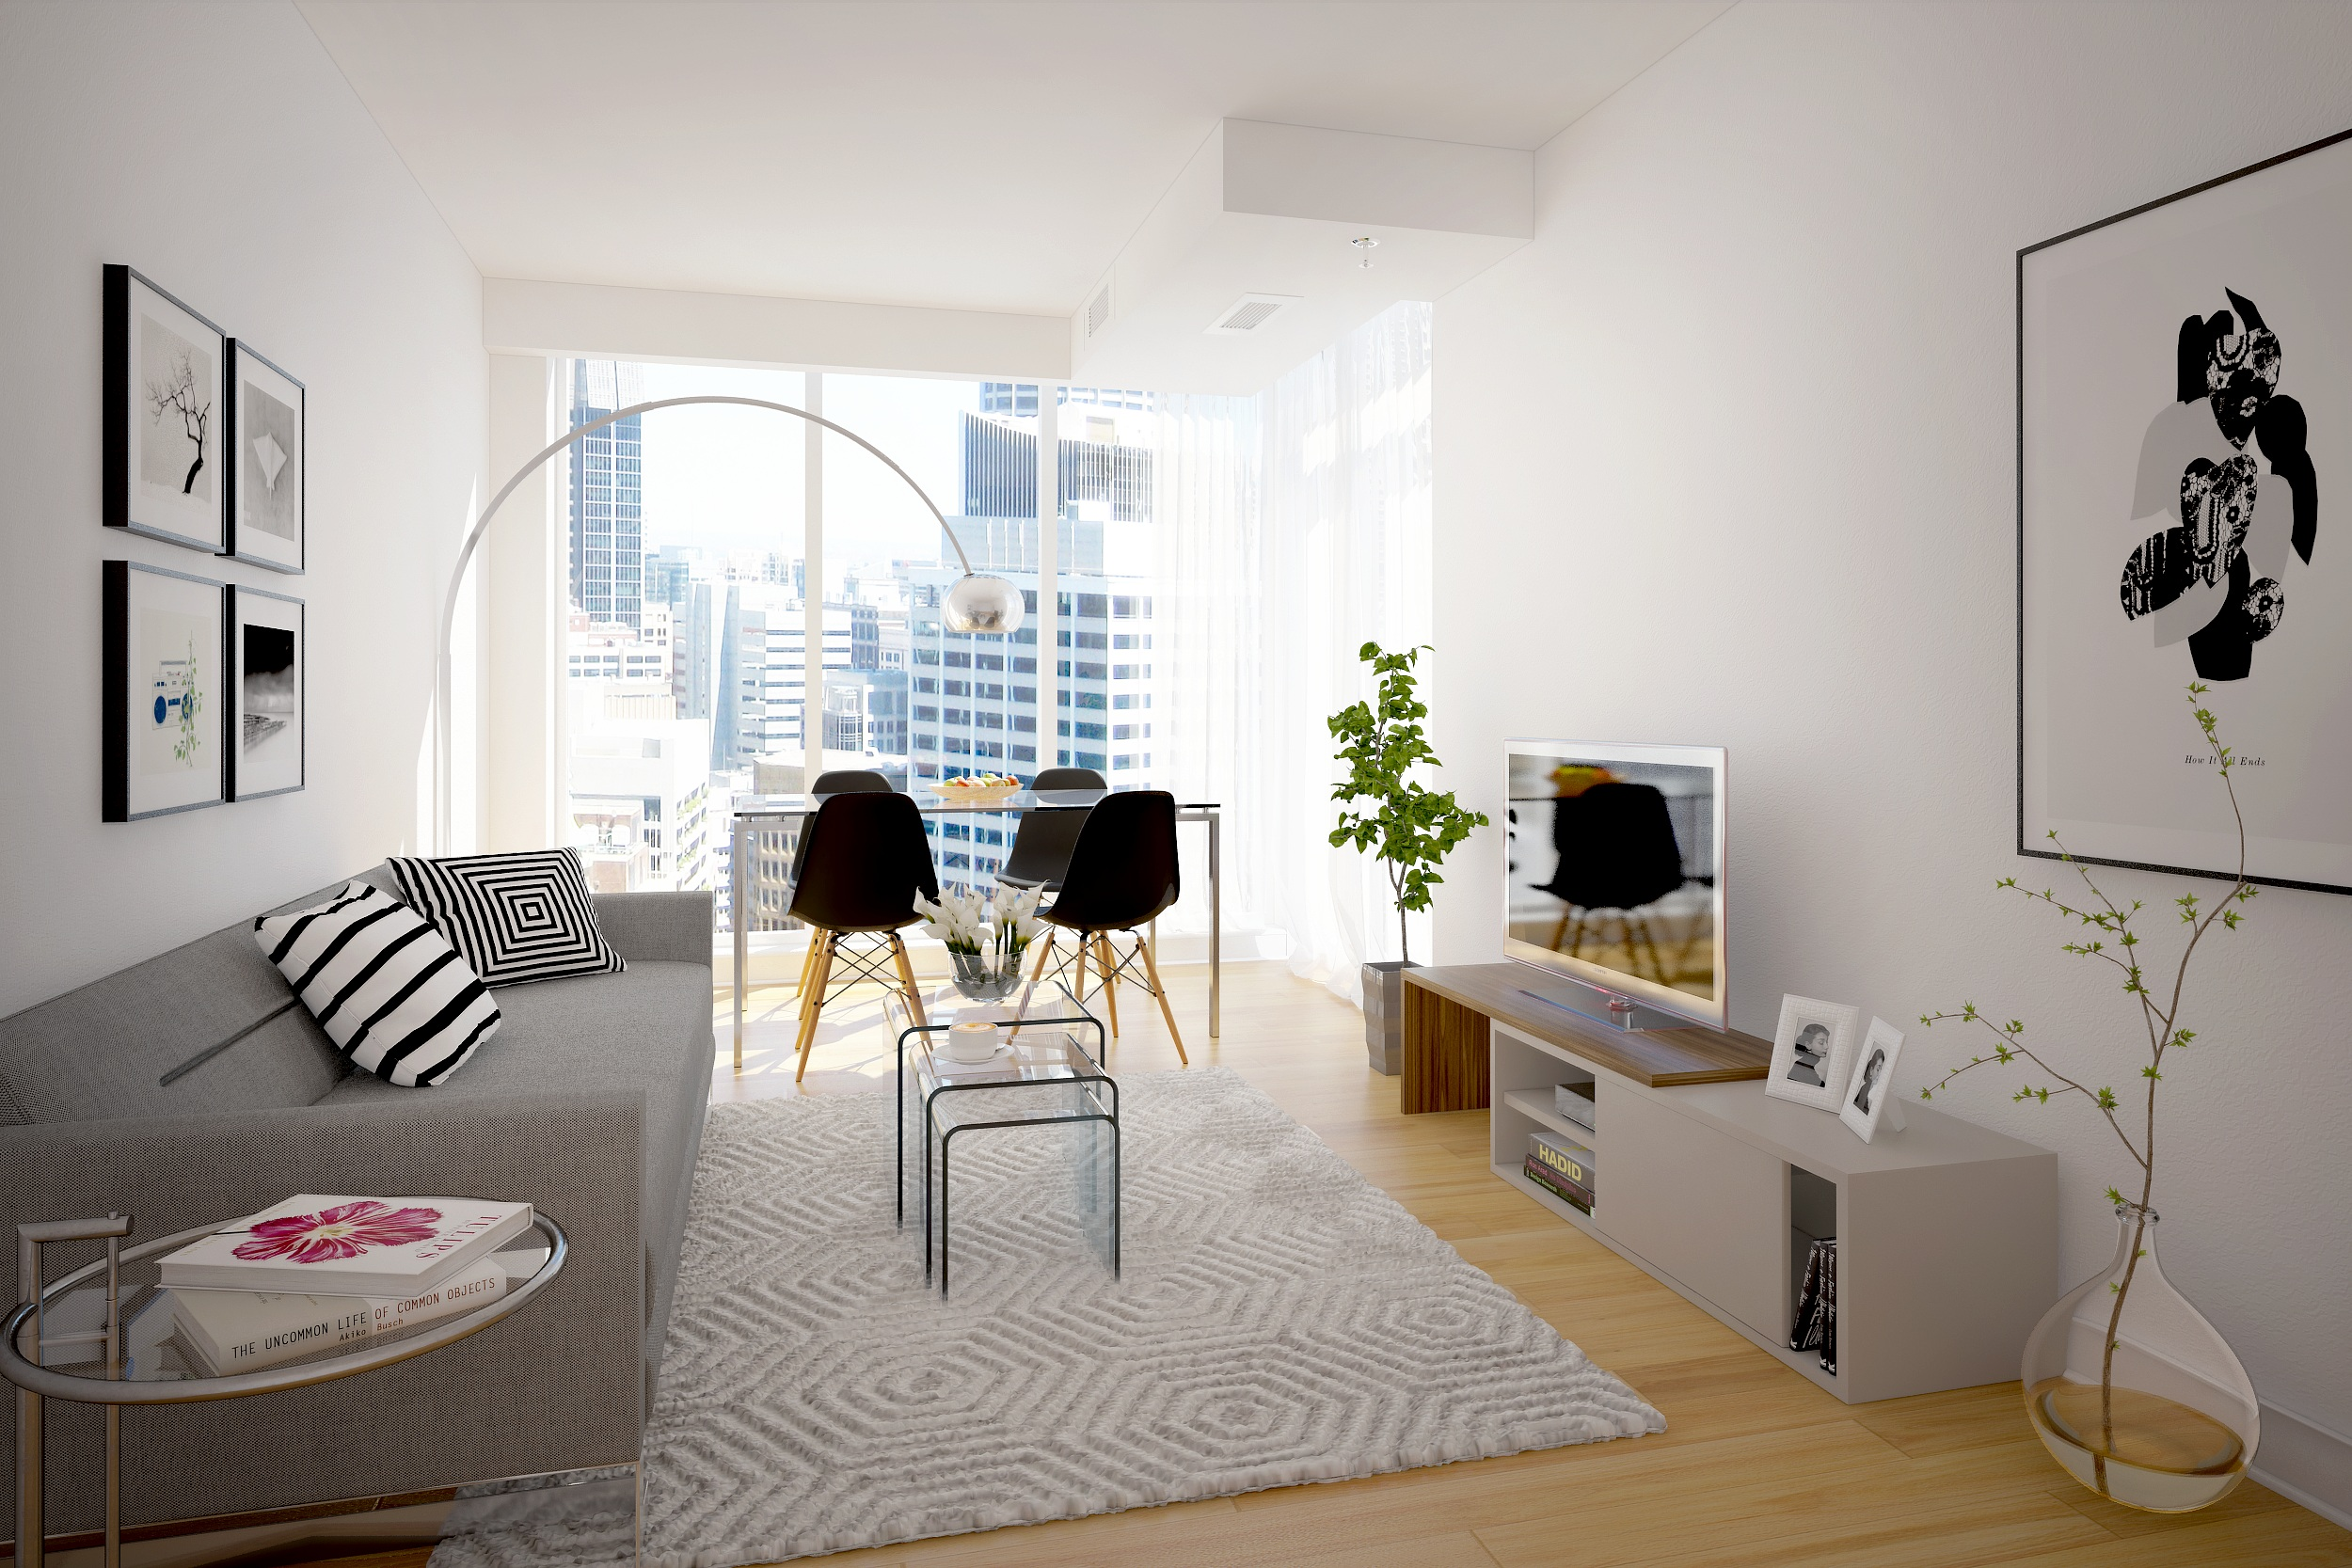 arizona internships ja interior nyc design tile conference sophisticated wall scottsdale living coference glass doctors room office concept commercial mosaic vm